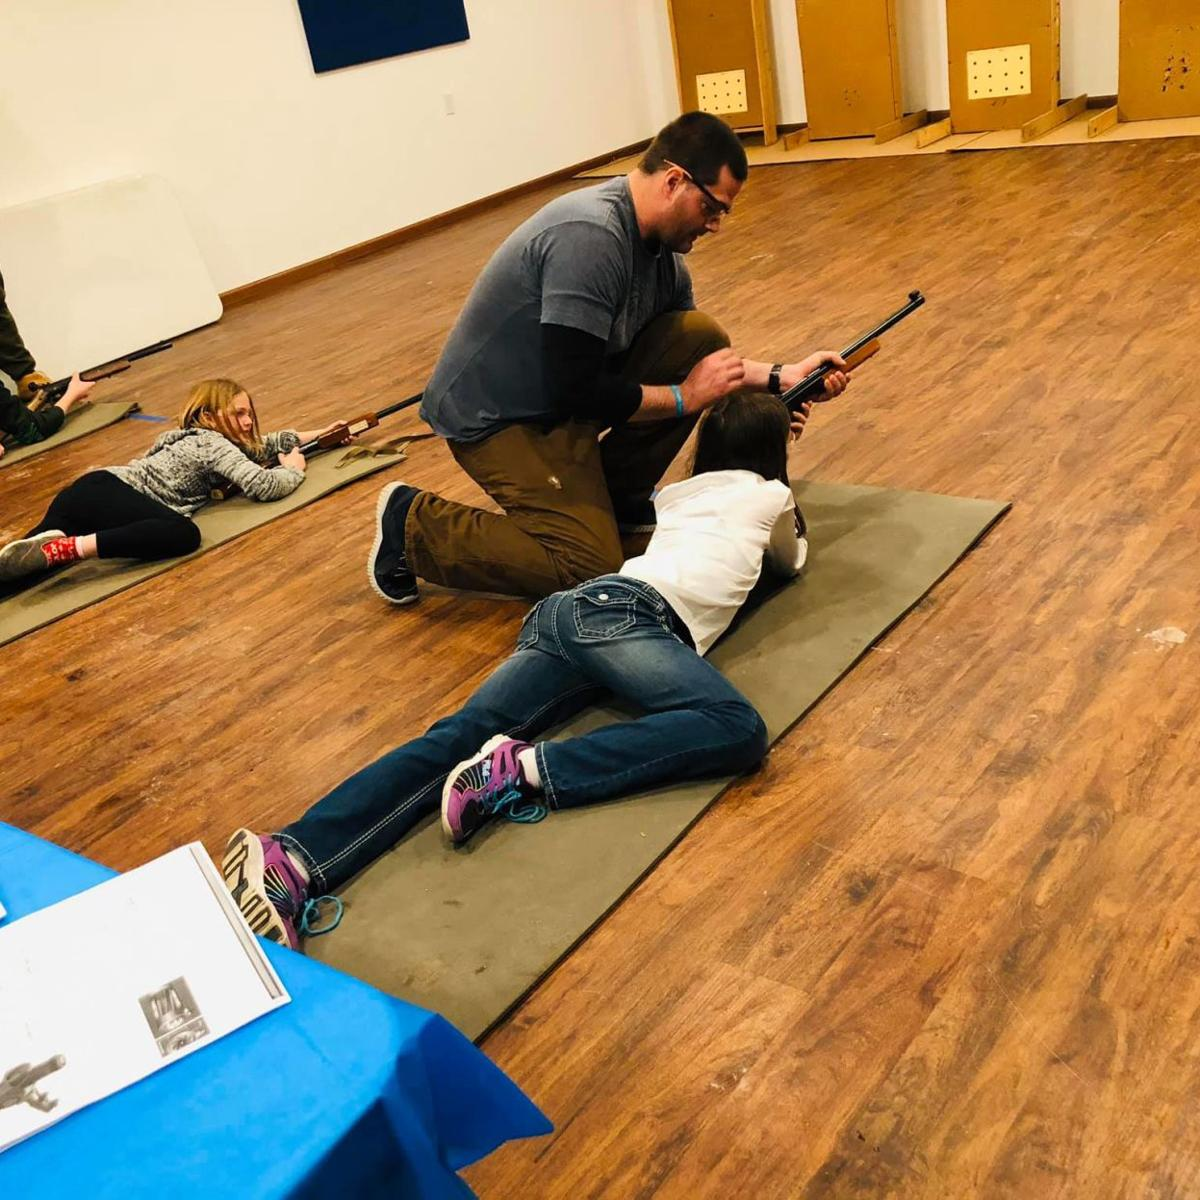 Add a new element to 4H shooting sports program